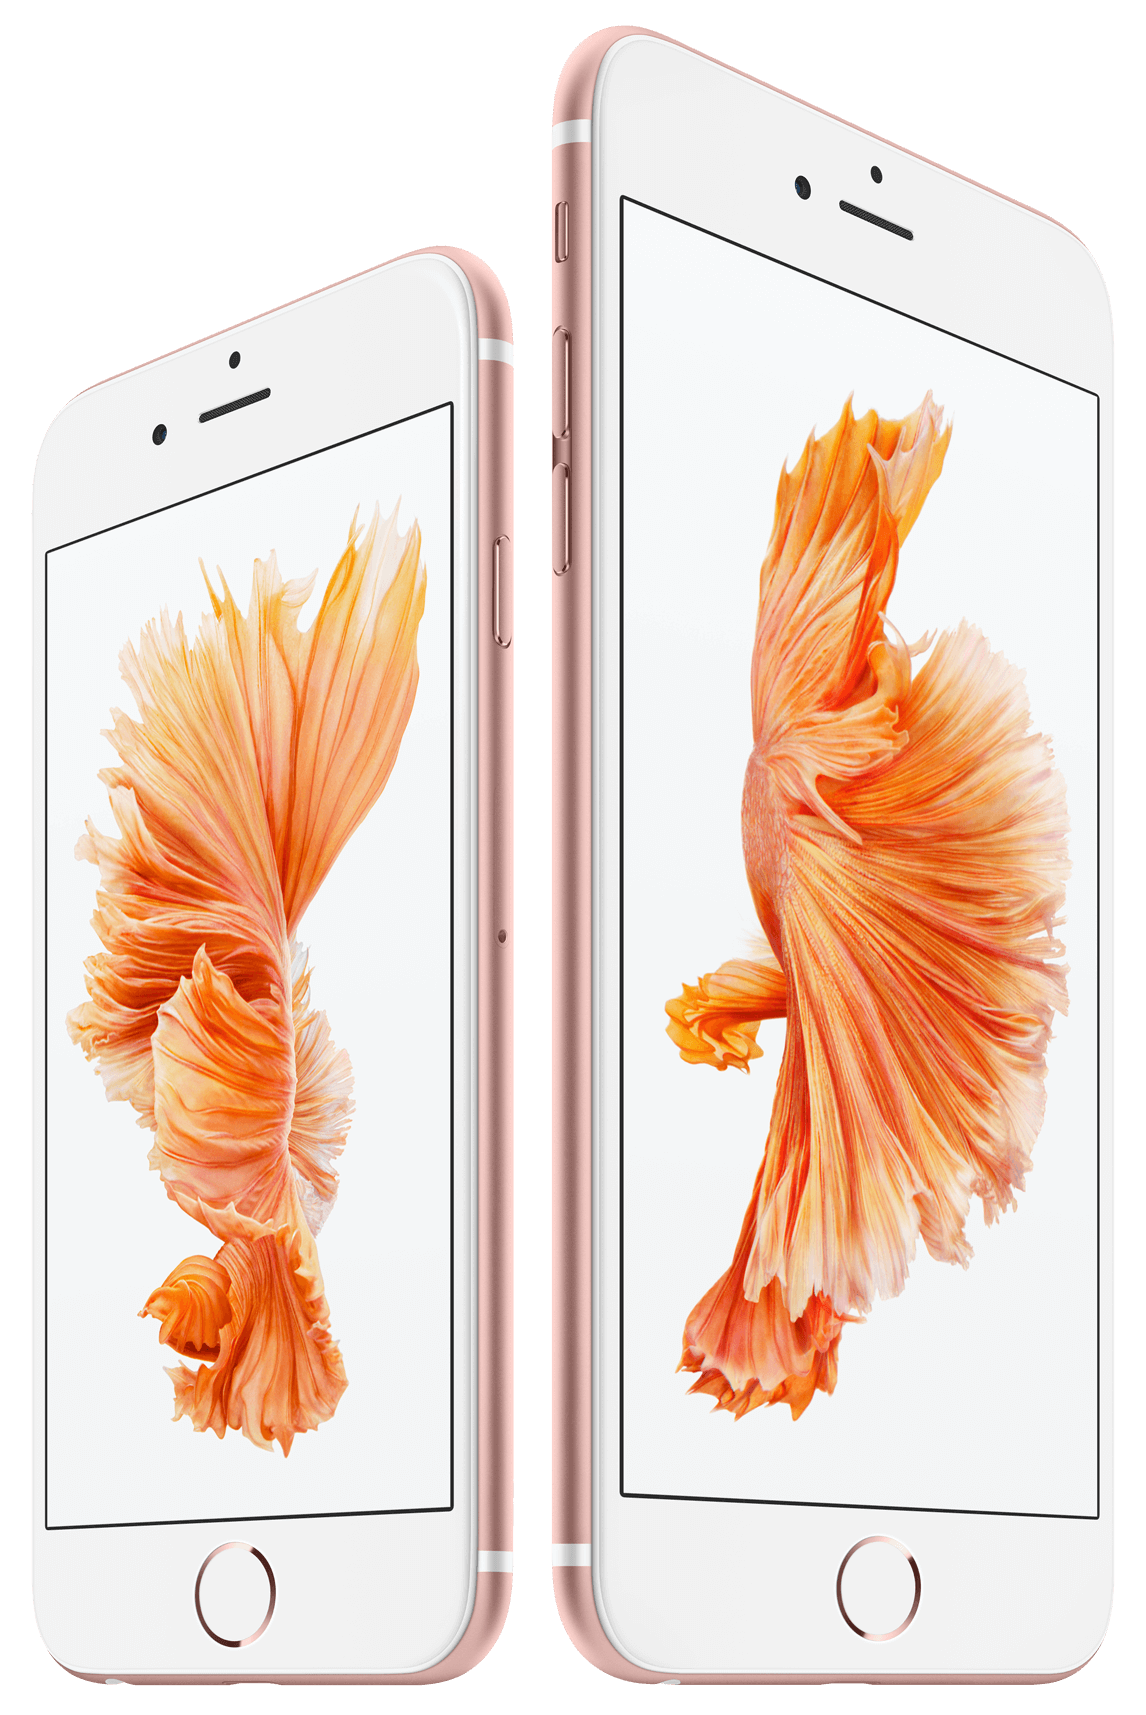 iPhone 6s Plus | Mobility | TELUS.com